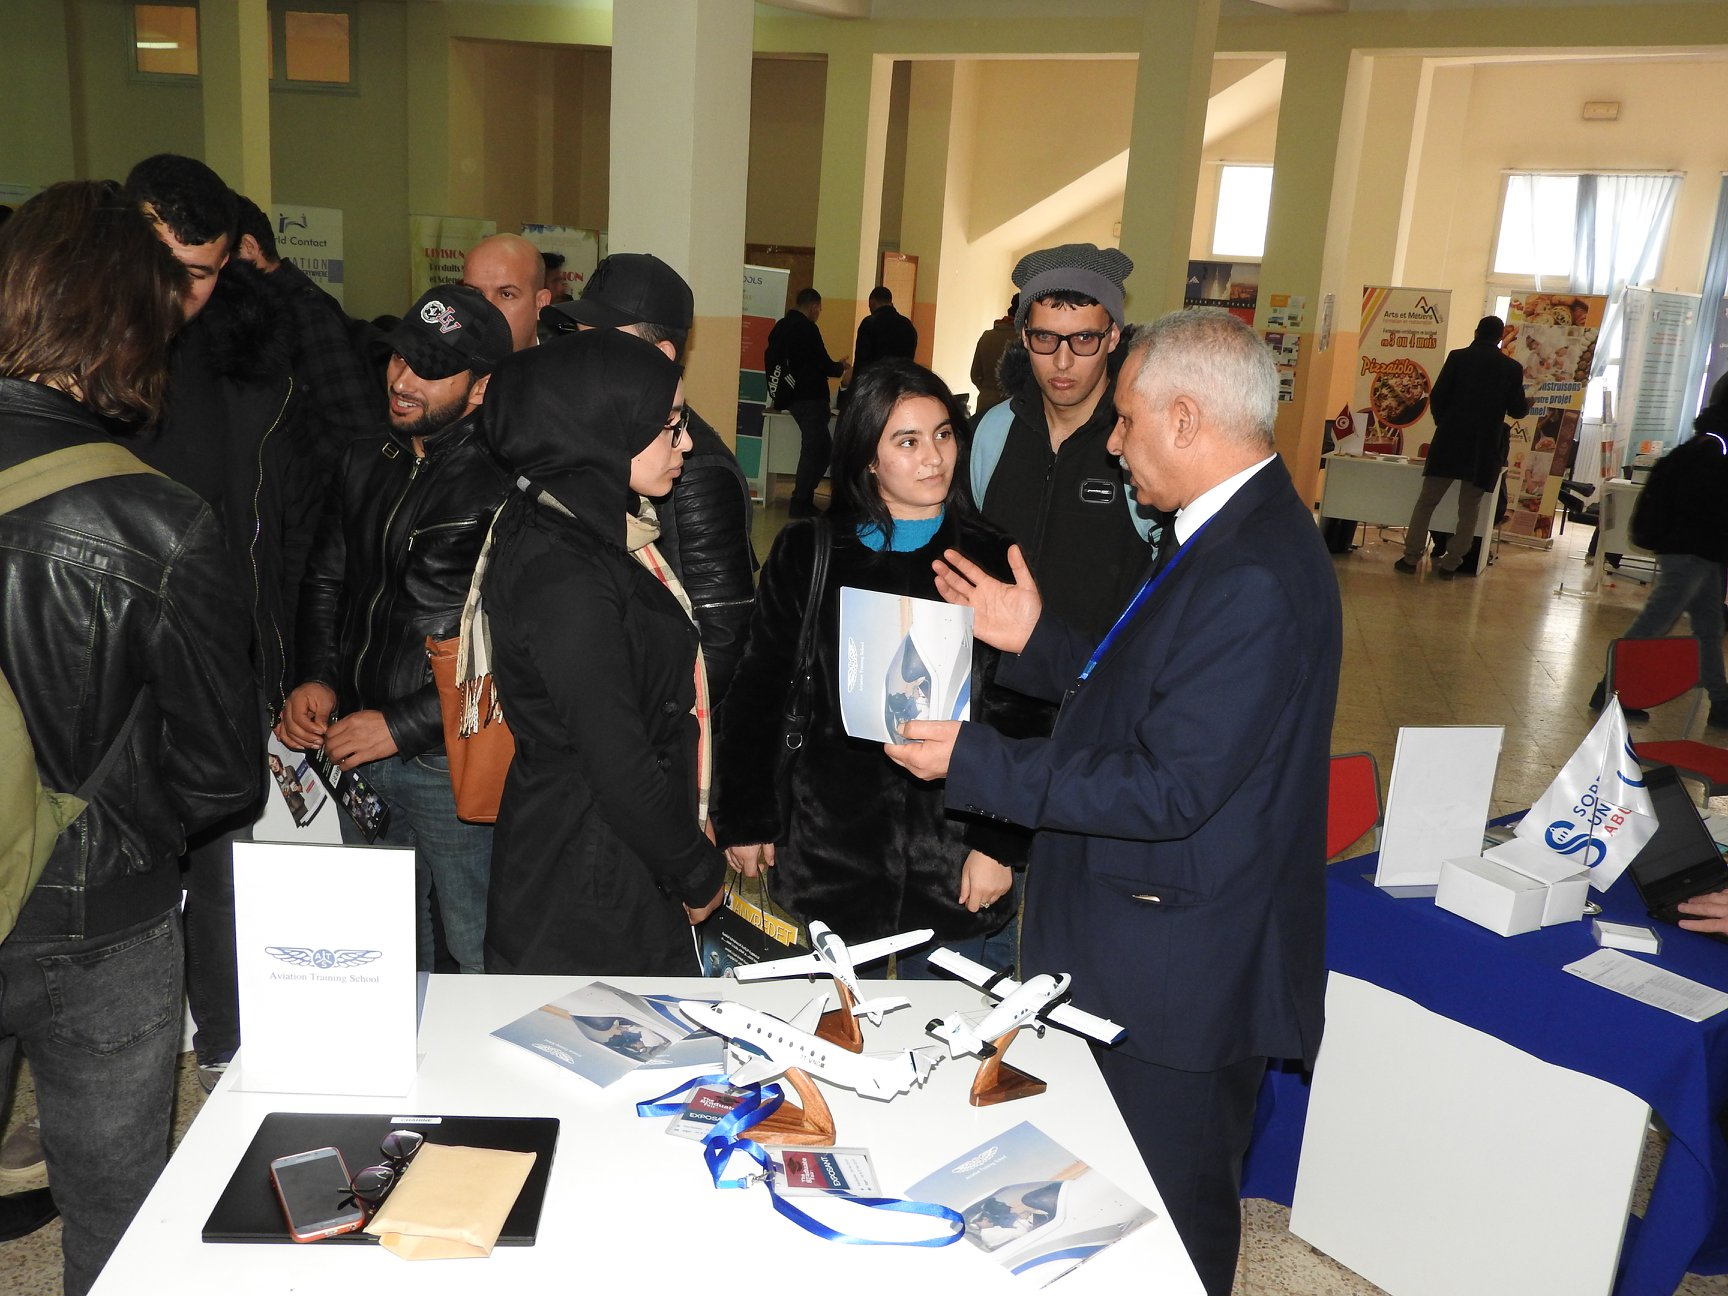 ATS at The Graduate Fair, Tizi Ouzou.